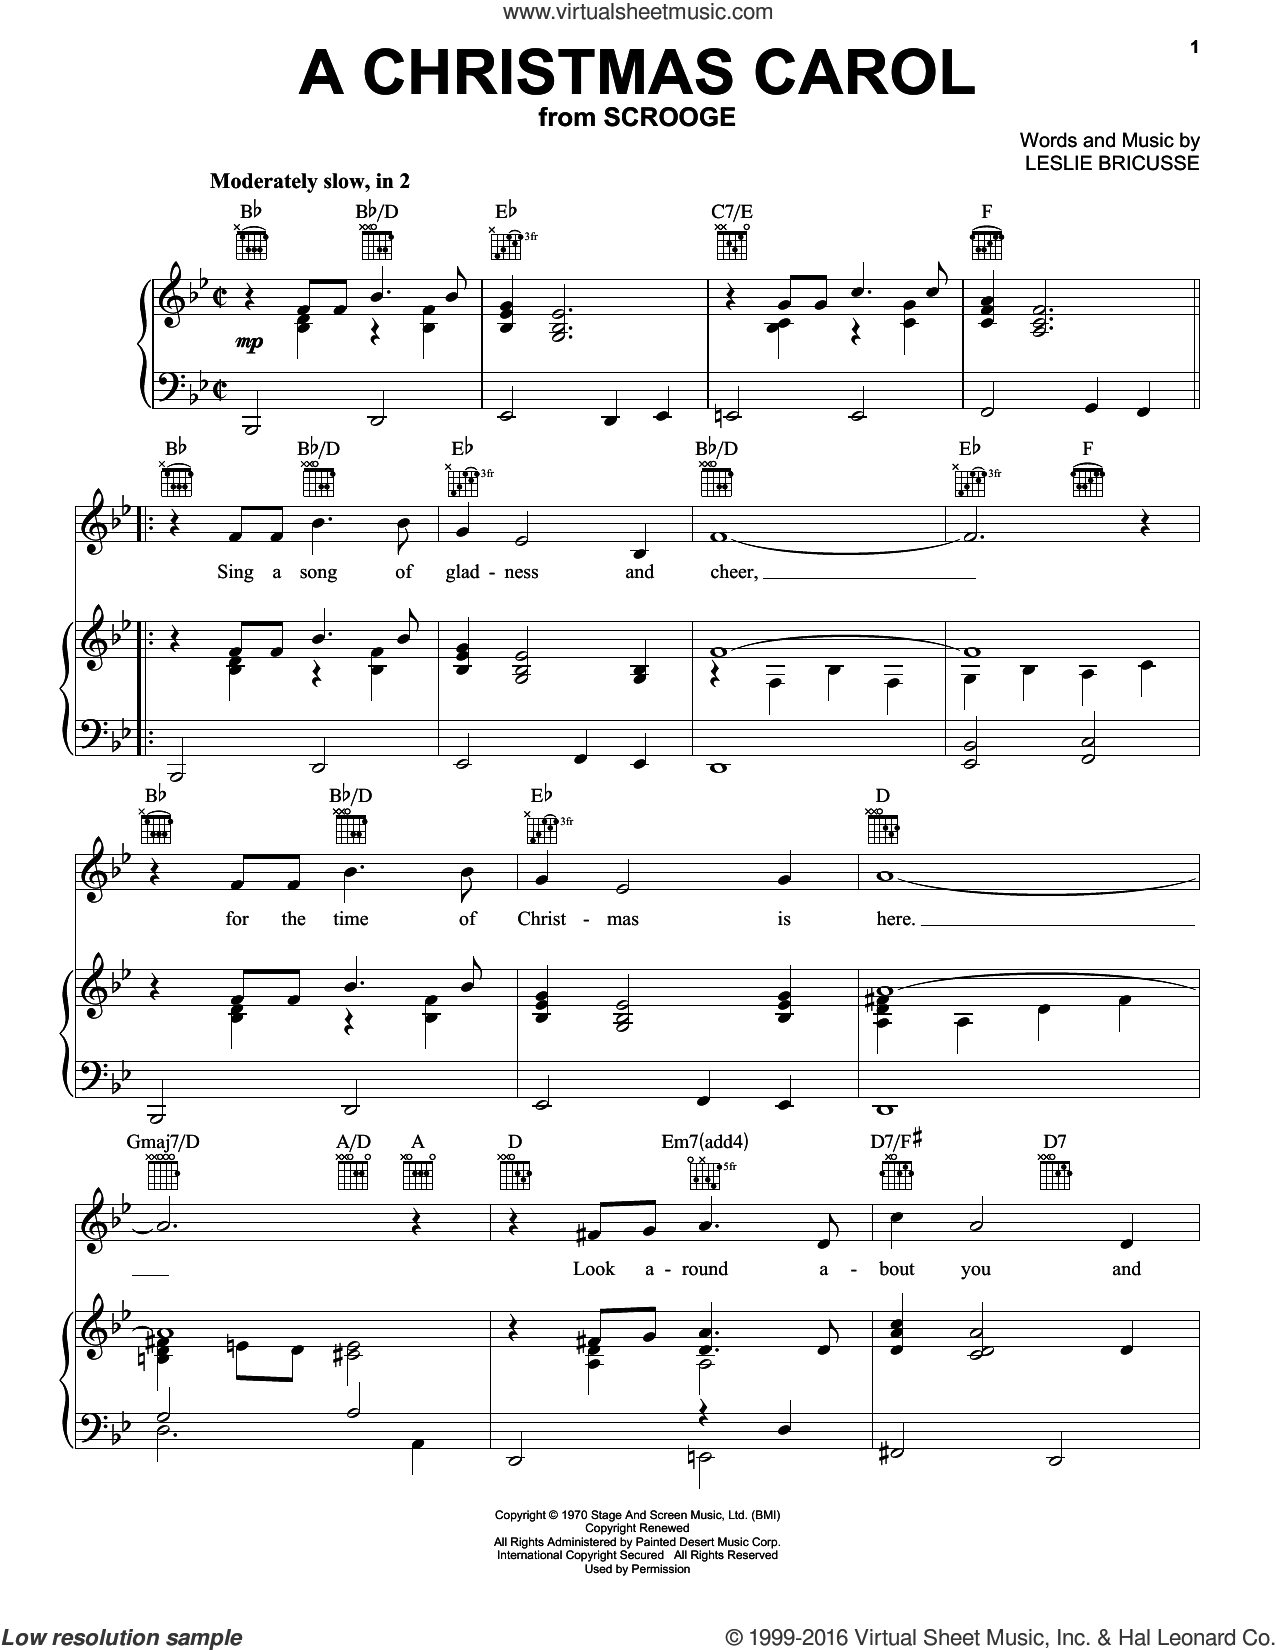 A Christmas Carol sheet music for voice, piano or guitar by Leslie Bricusse, intermediate skill level